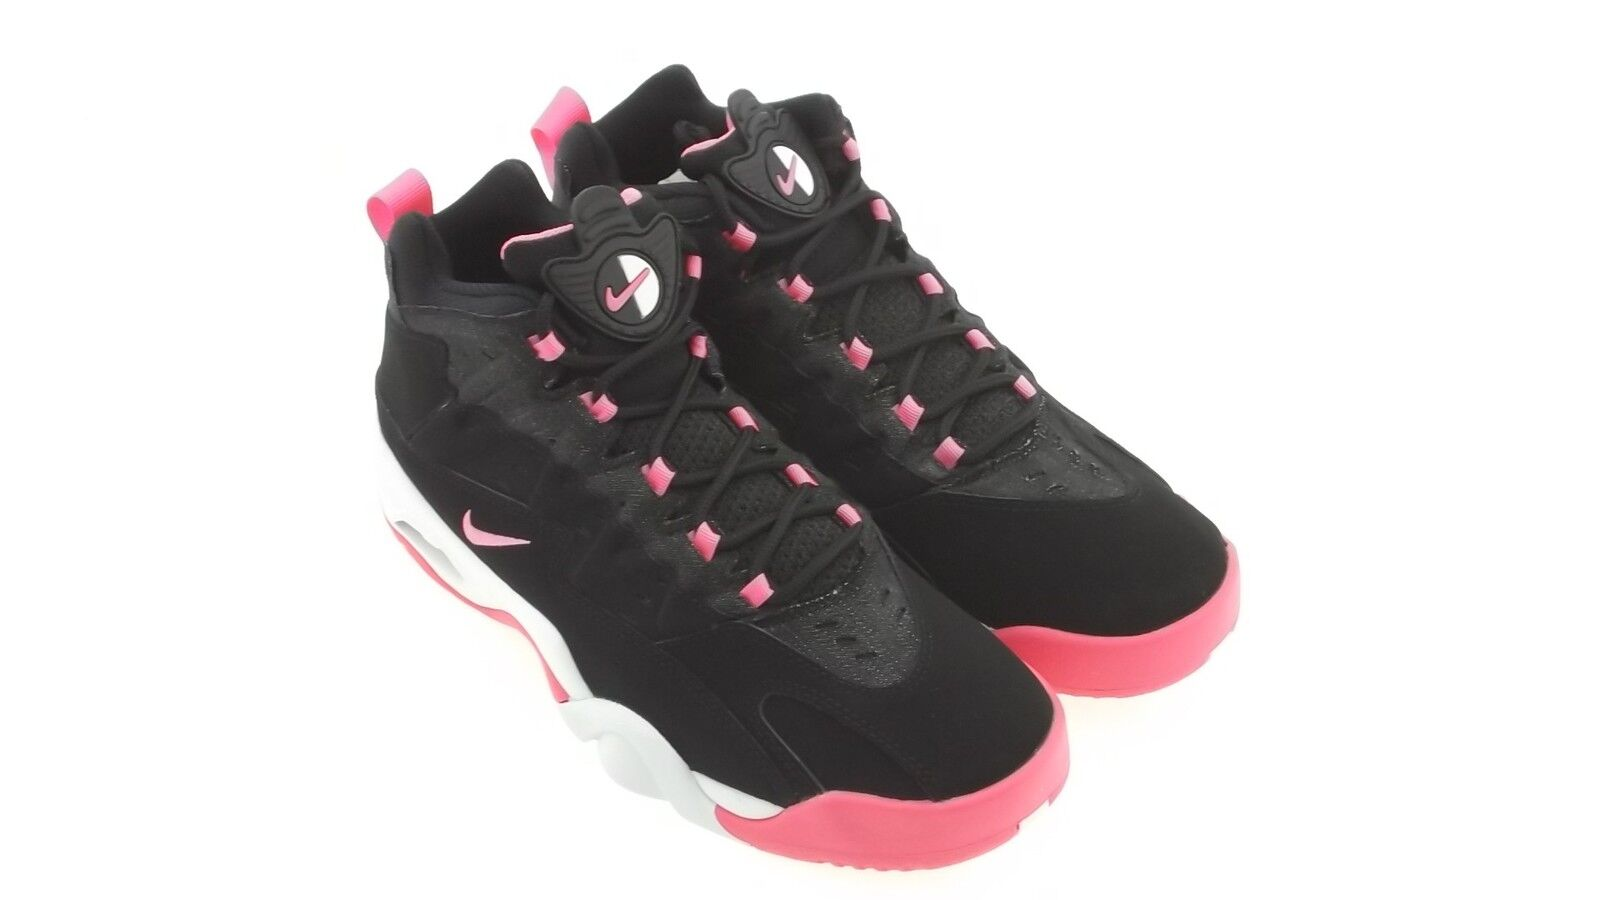 705438-003 Nike Hommes Air Flare andre noir / challenge rose andre Flare agassi chaussures c1bbaa